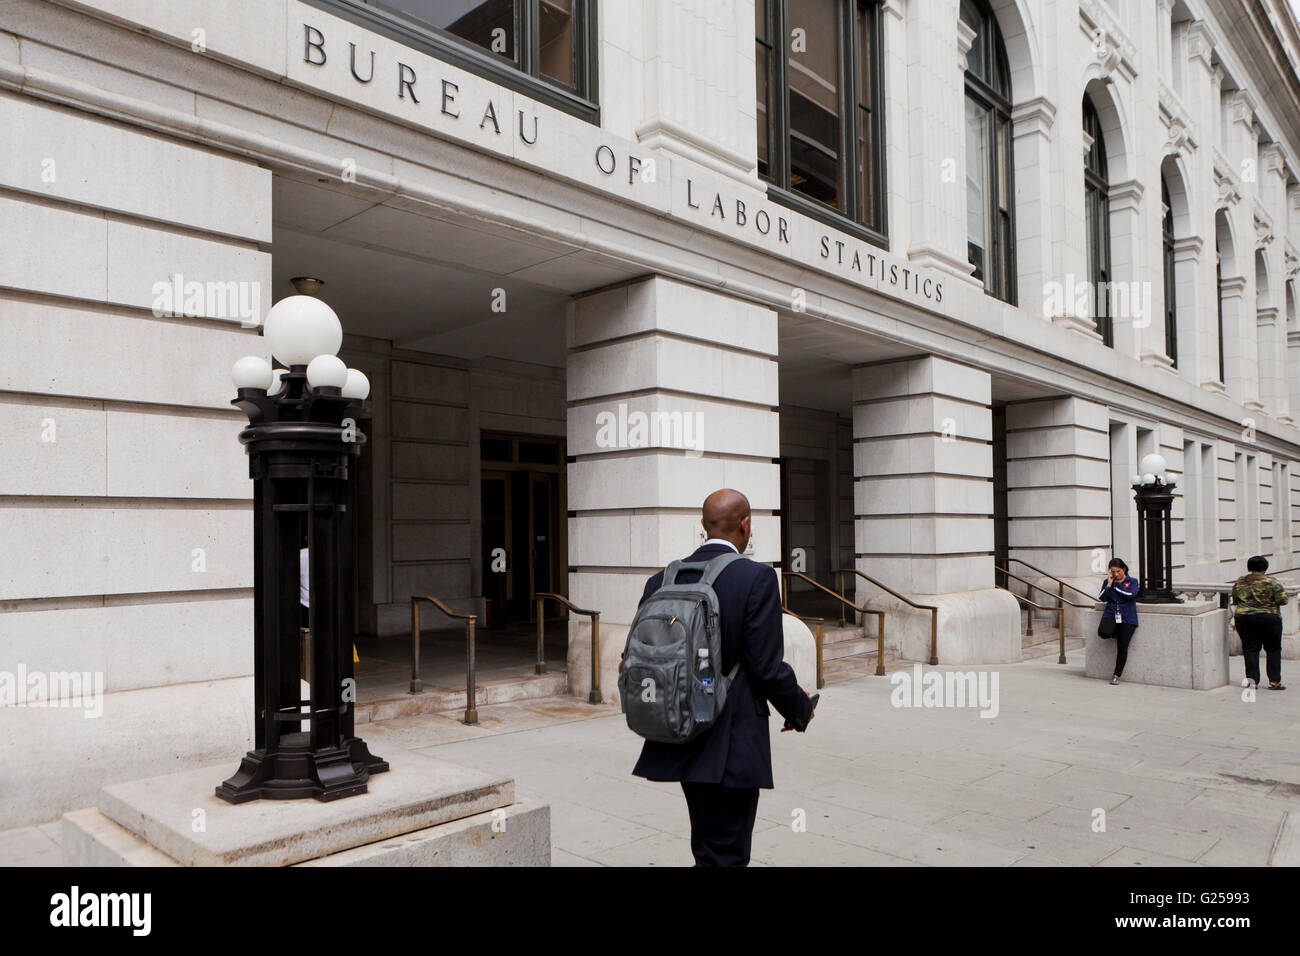 Bureau of labor statistics stock photos bureau of labor